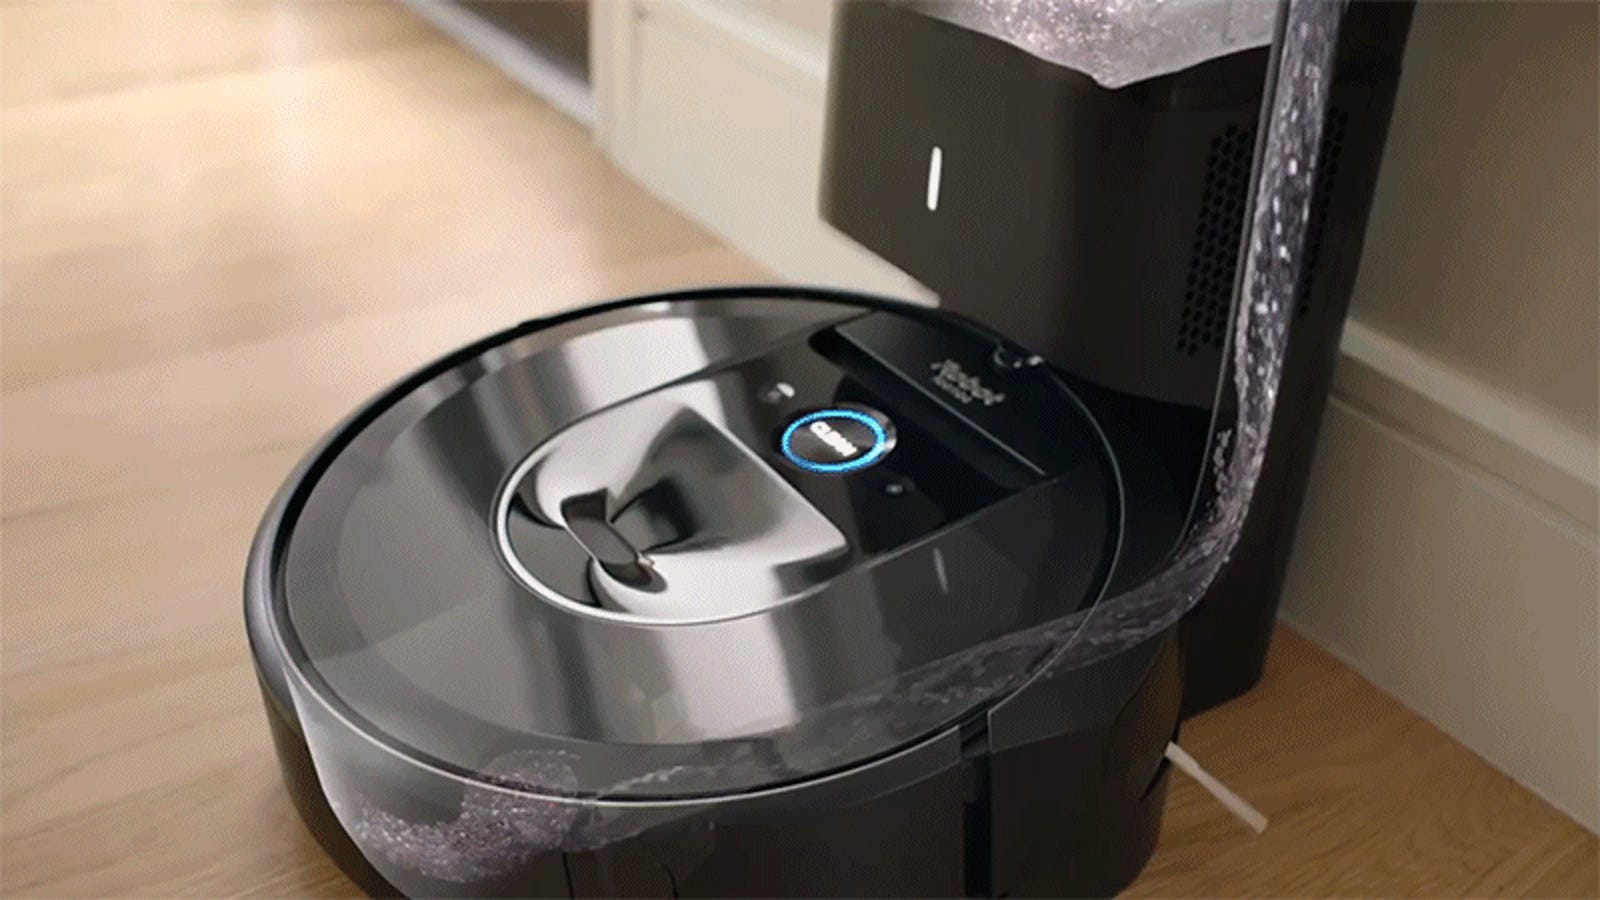 Irobot Says New I7 Roomba Vacuum Actually Empties Itself